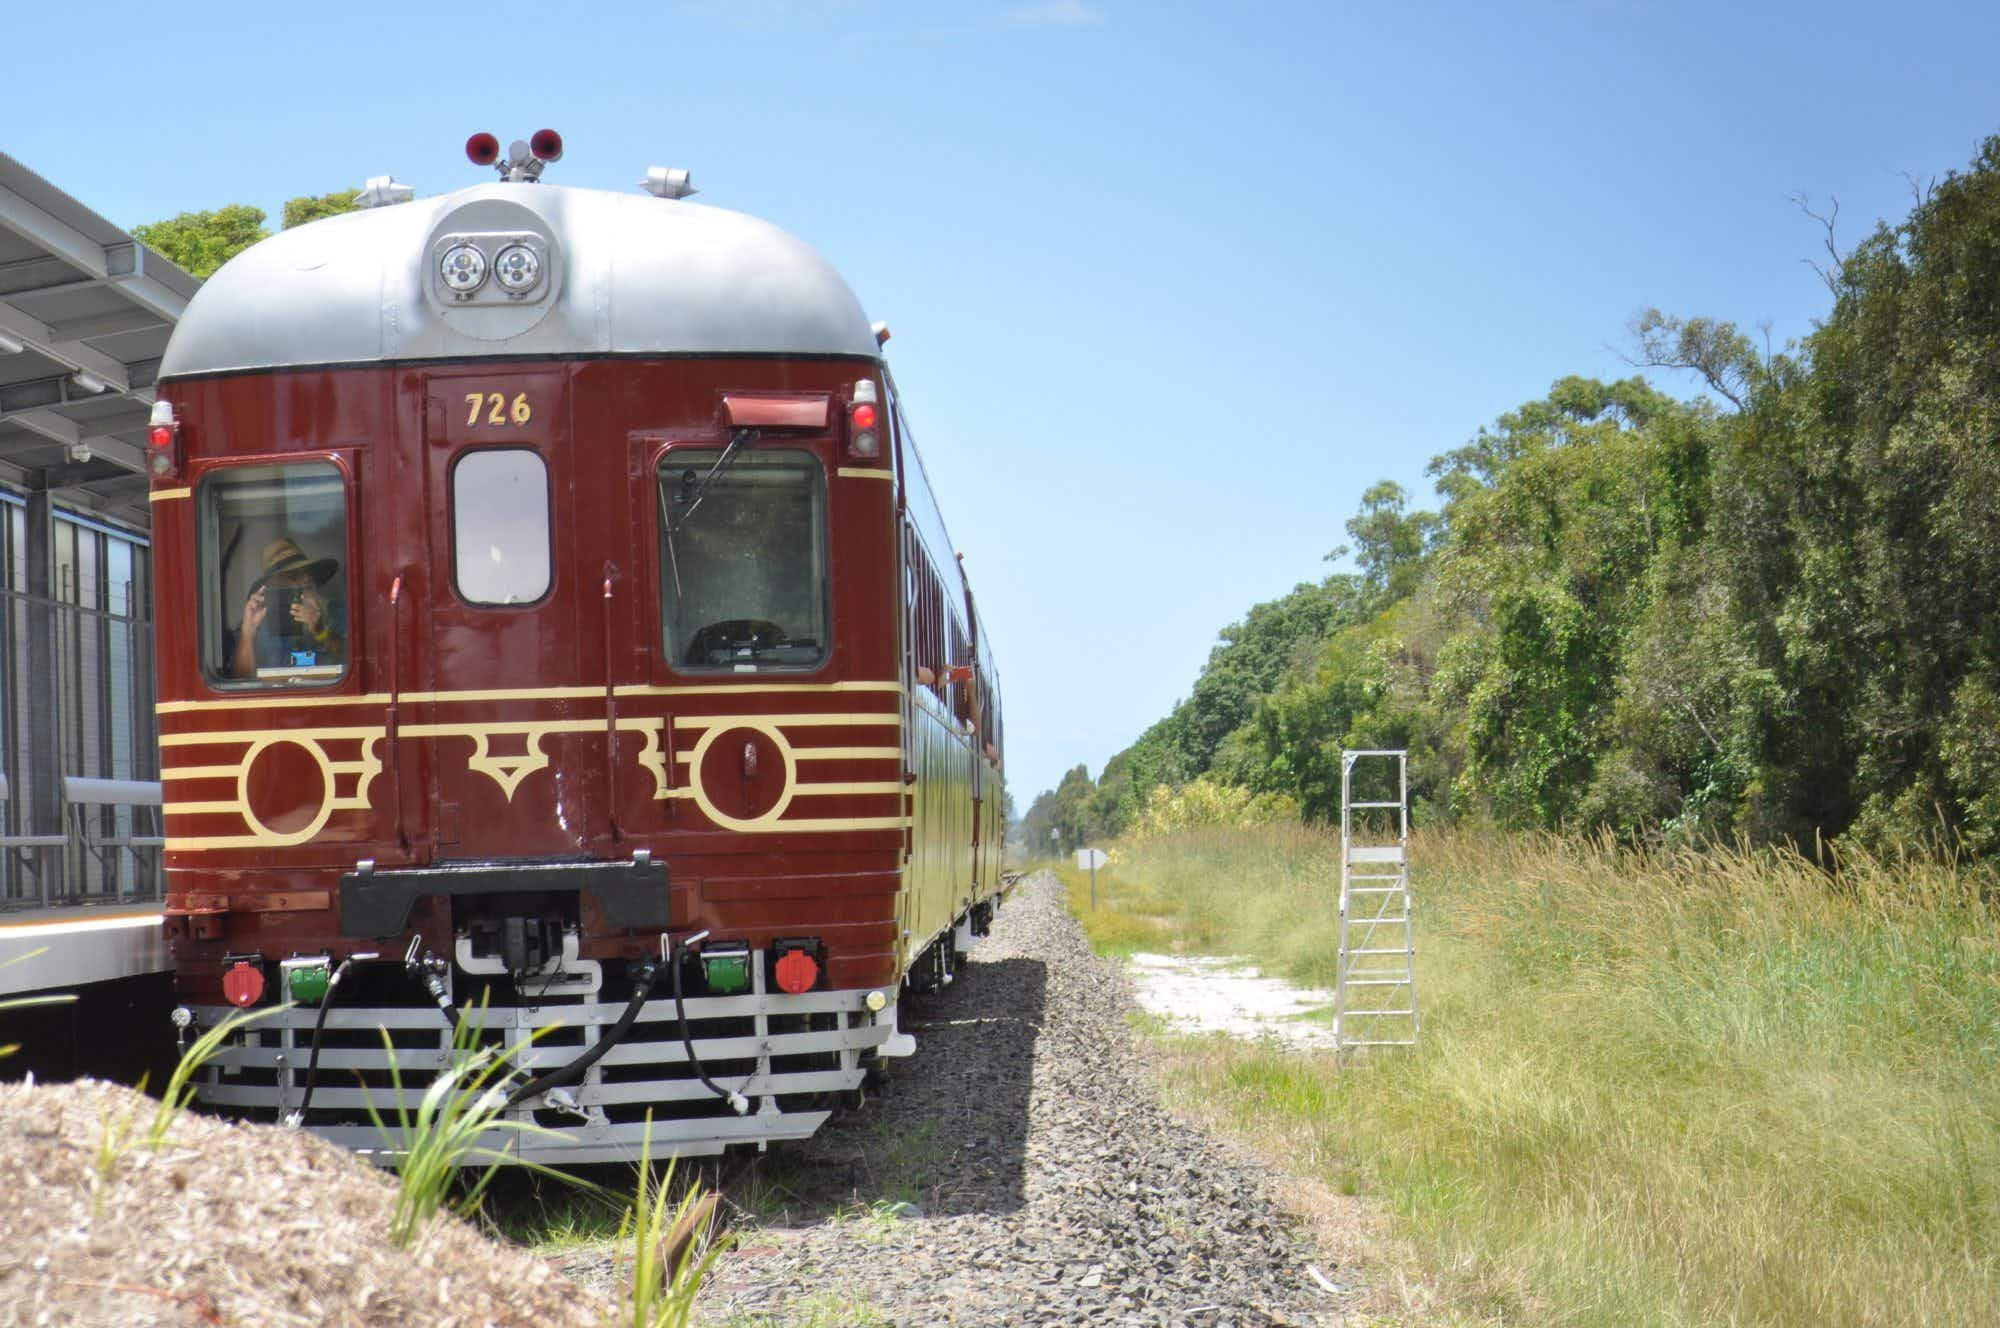 The world's first solar-powered train has launched in Byron Bay